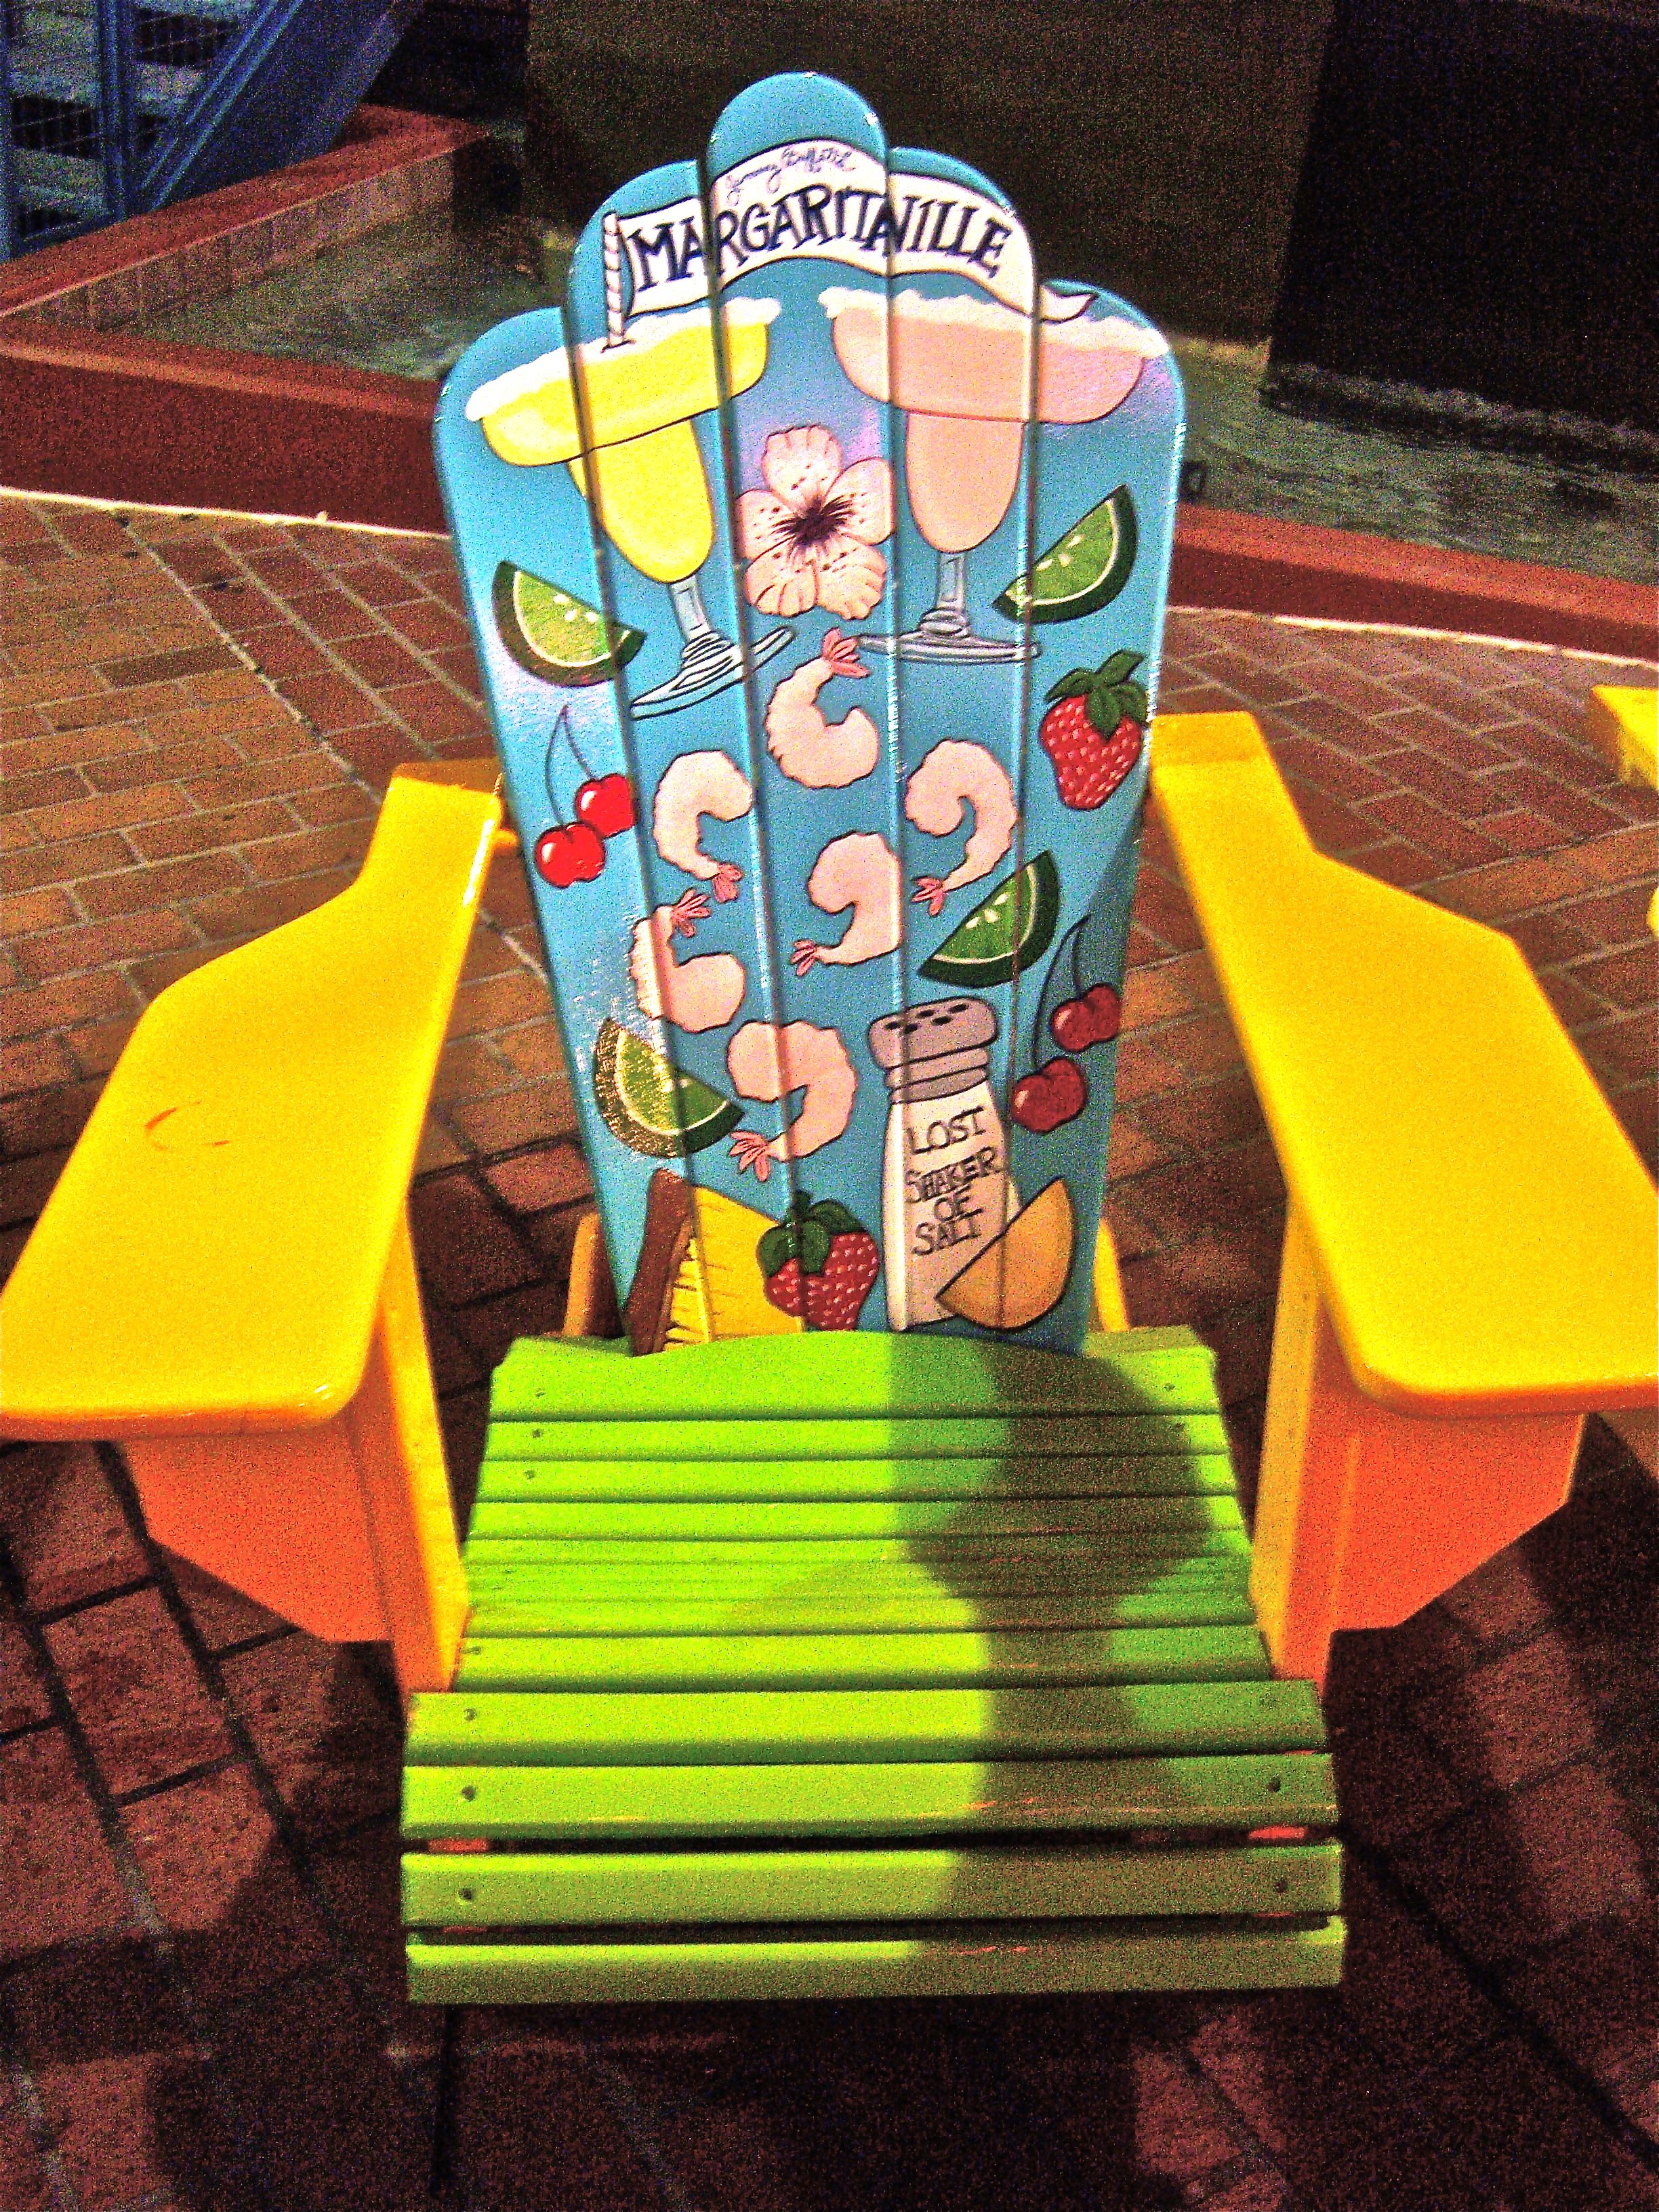 Margaritaville Adirondack Chairs Margaritaville Chair It 39s Summertime Painted Outdoor